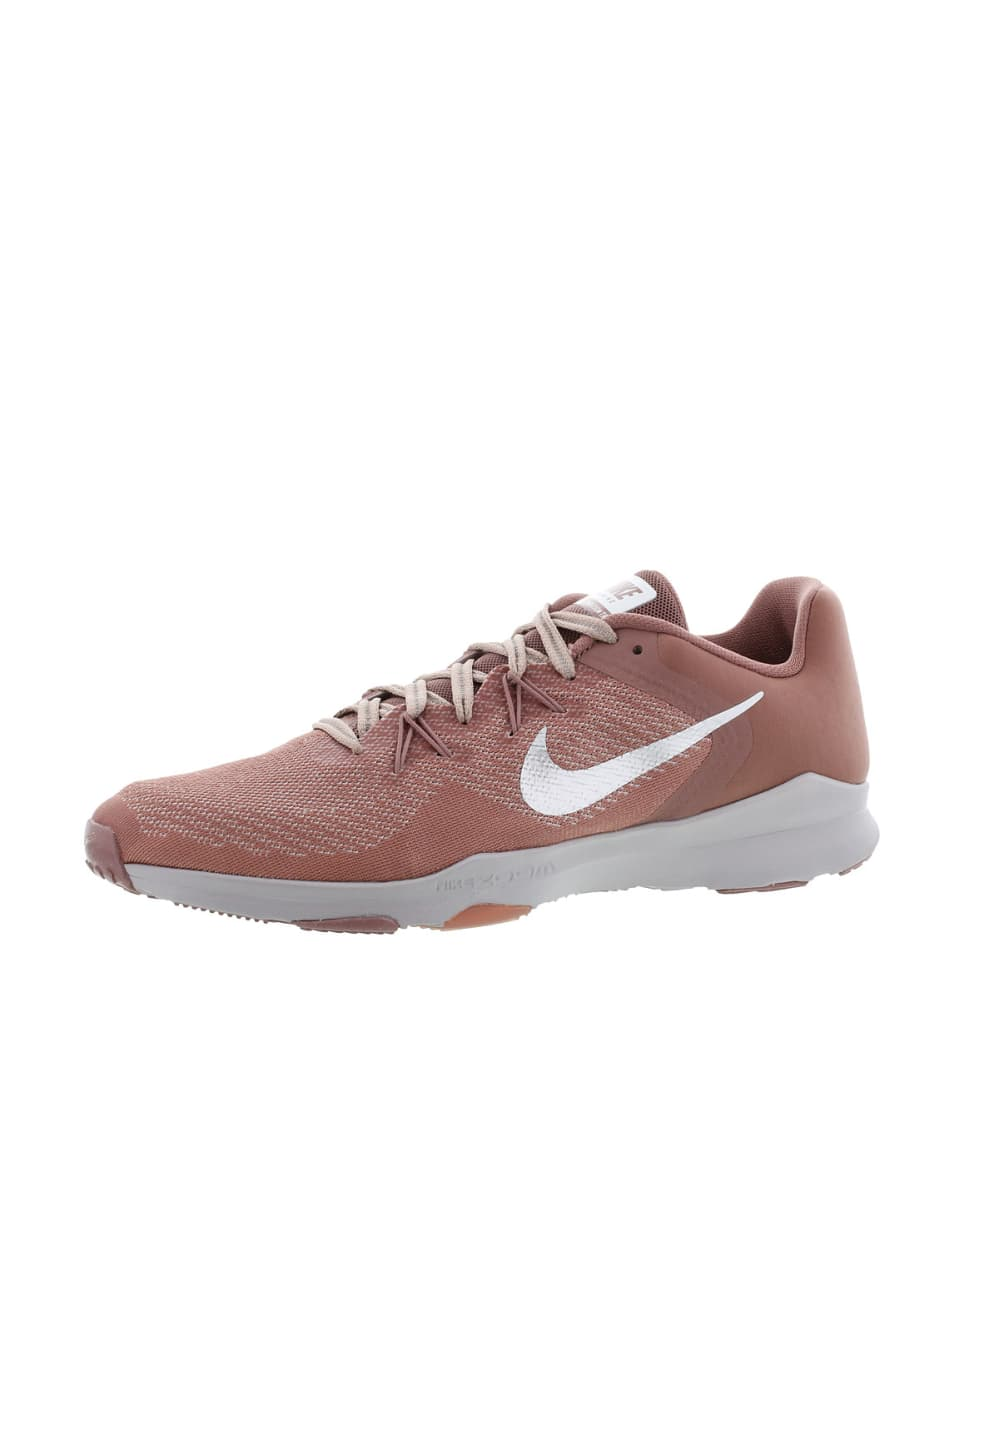 e861a04c4cc ... Nike Zoom Condition Tr 2 Premium - Fitness shoes for Women - big  discount 7f066 ab44f ...